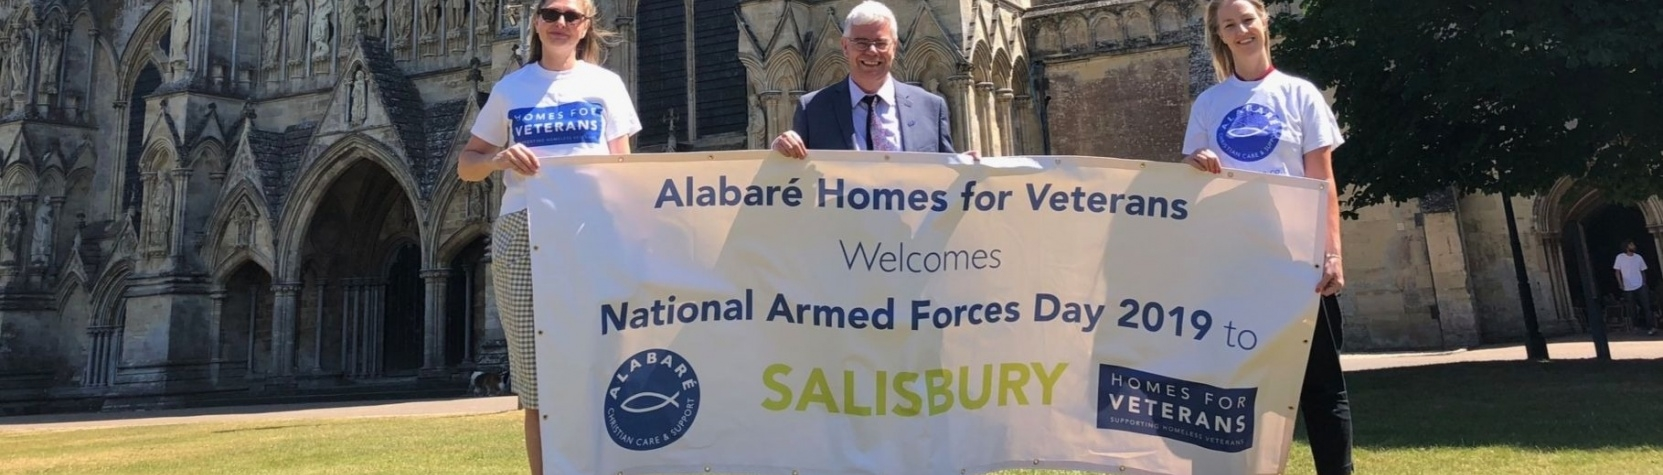 National Armed Forces Day 2019 is coming to Salisbury